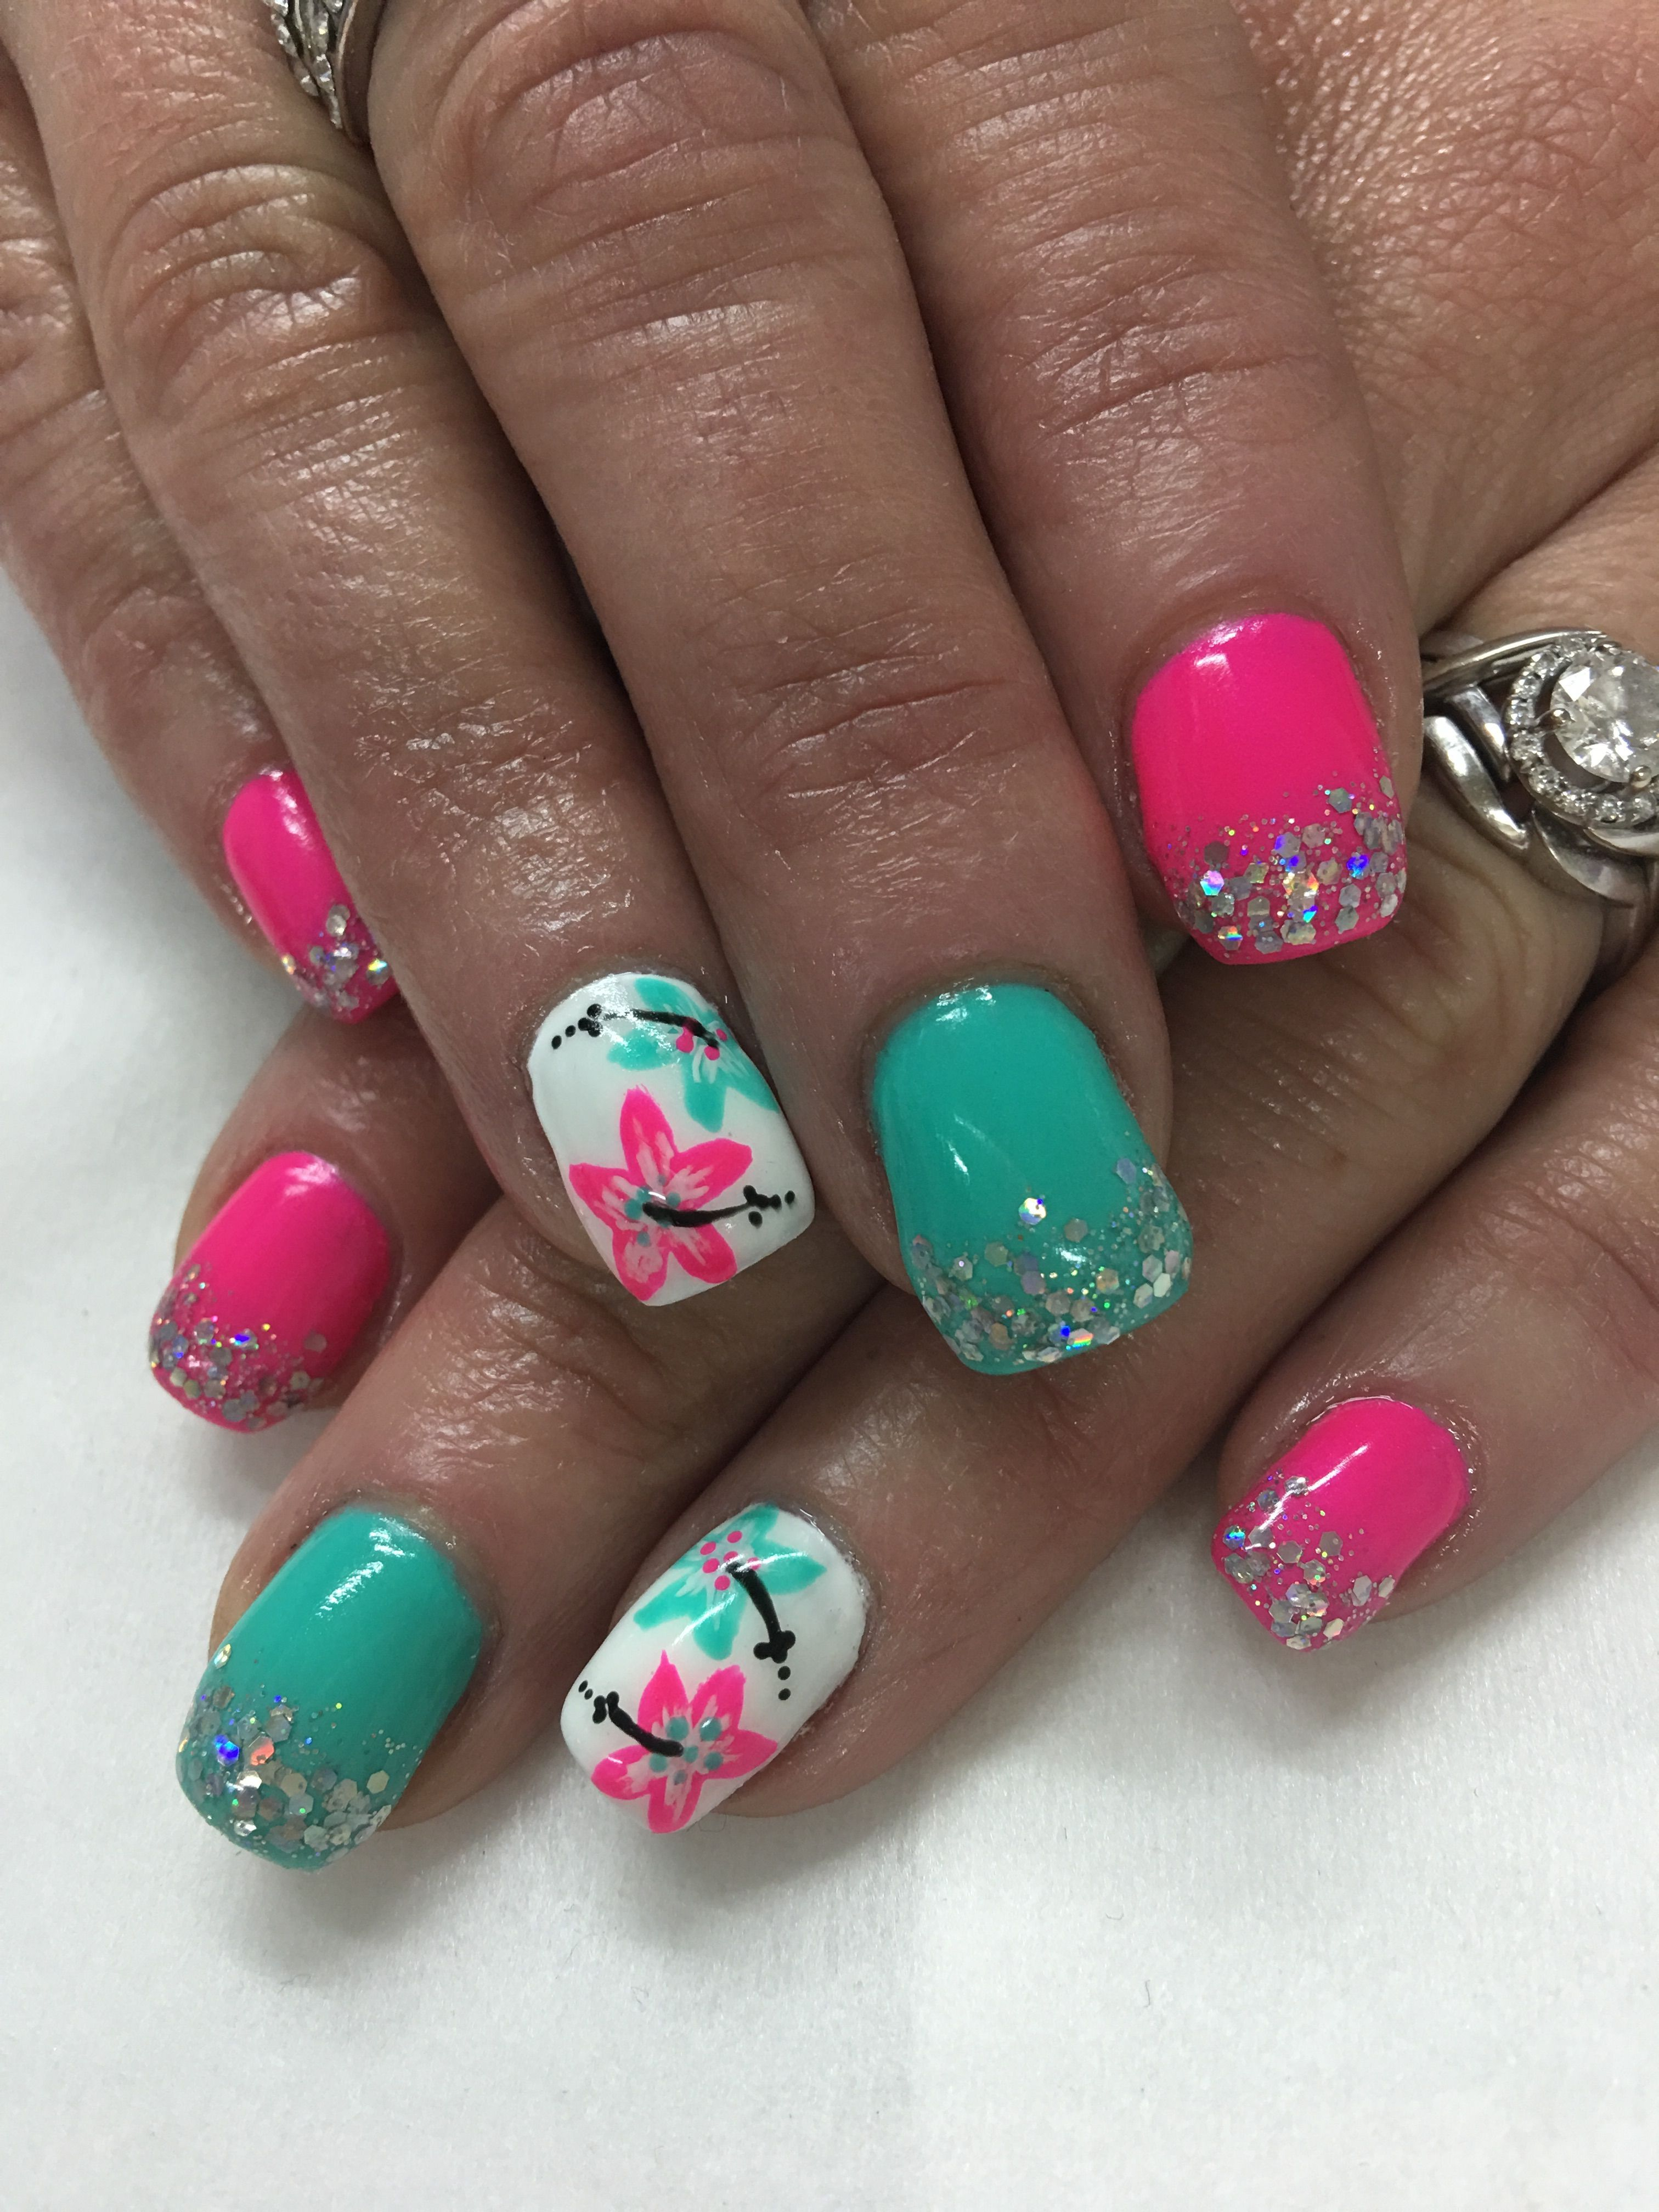 Light Elegance Playful Pink Just White Buttercream Seafoam And Hand Painted Tropical Hibiscus Flowers Gel Nai Beach Nail Designs Luxury Nails Vacation Nails